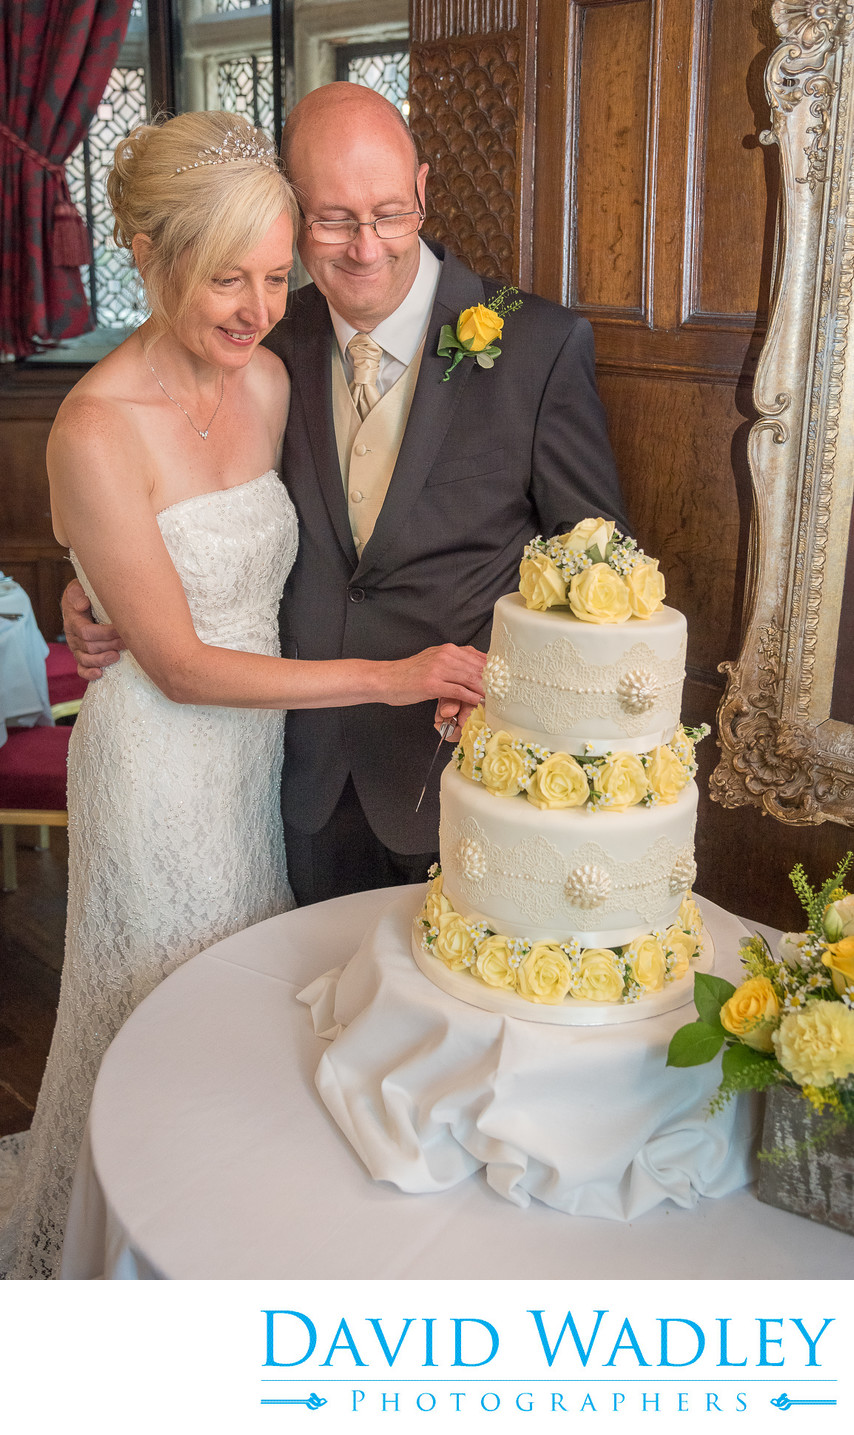 Wedding cake at New Hall Hotel in Sutton Coldfield.